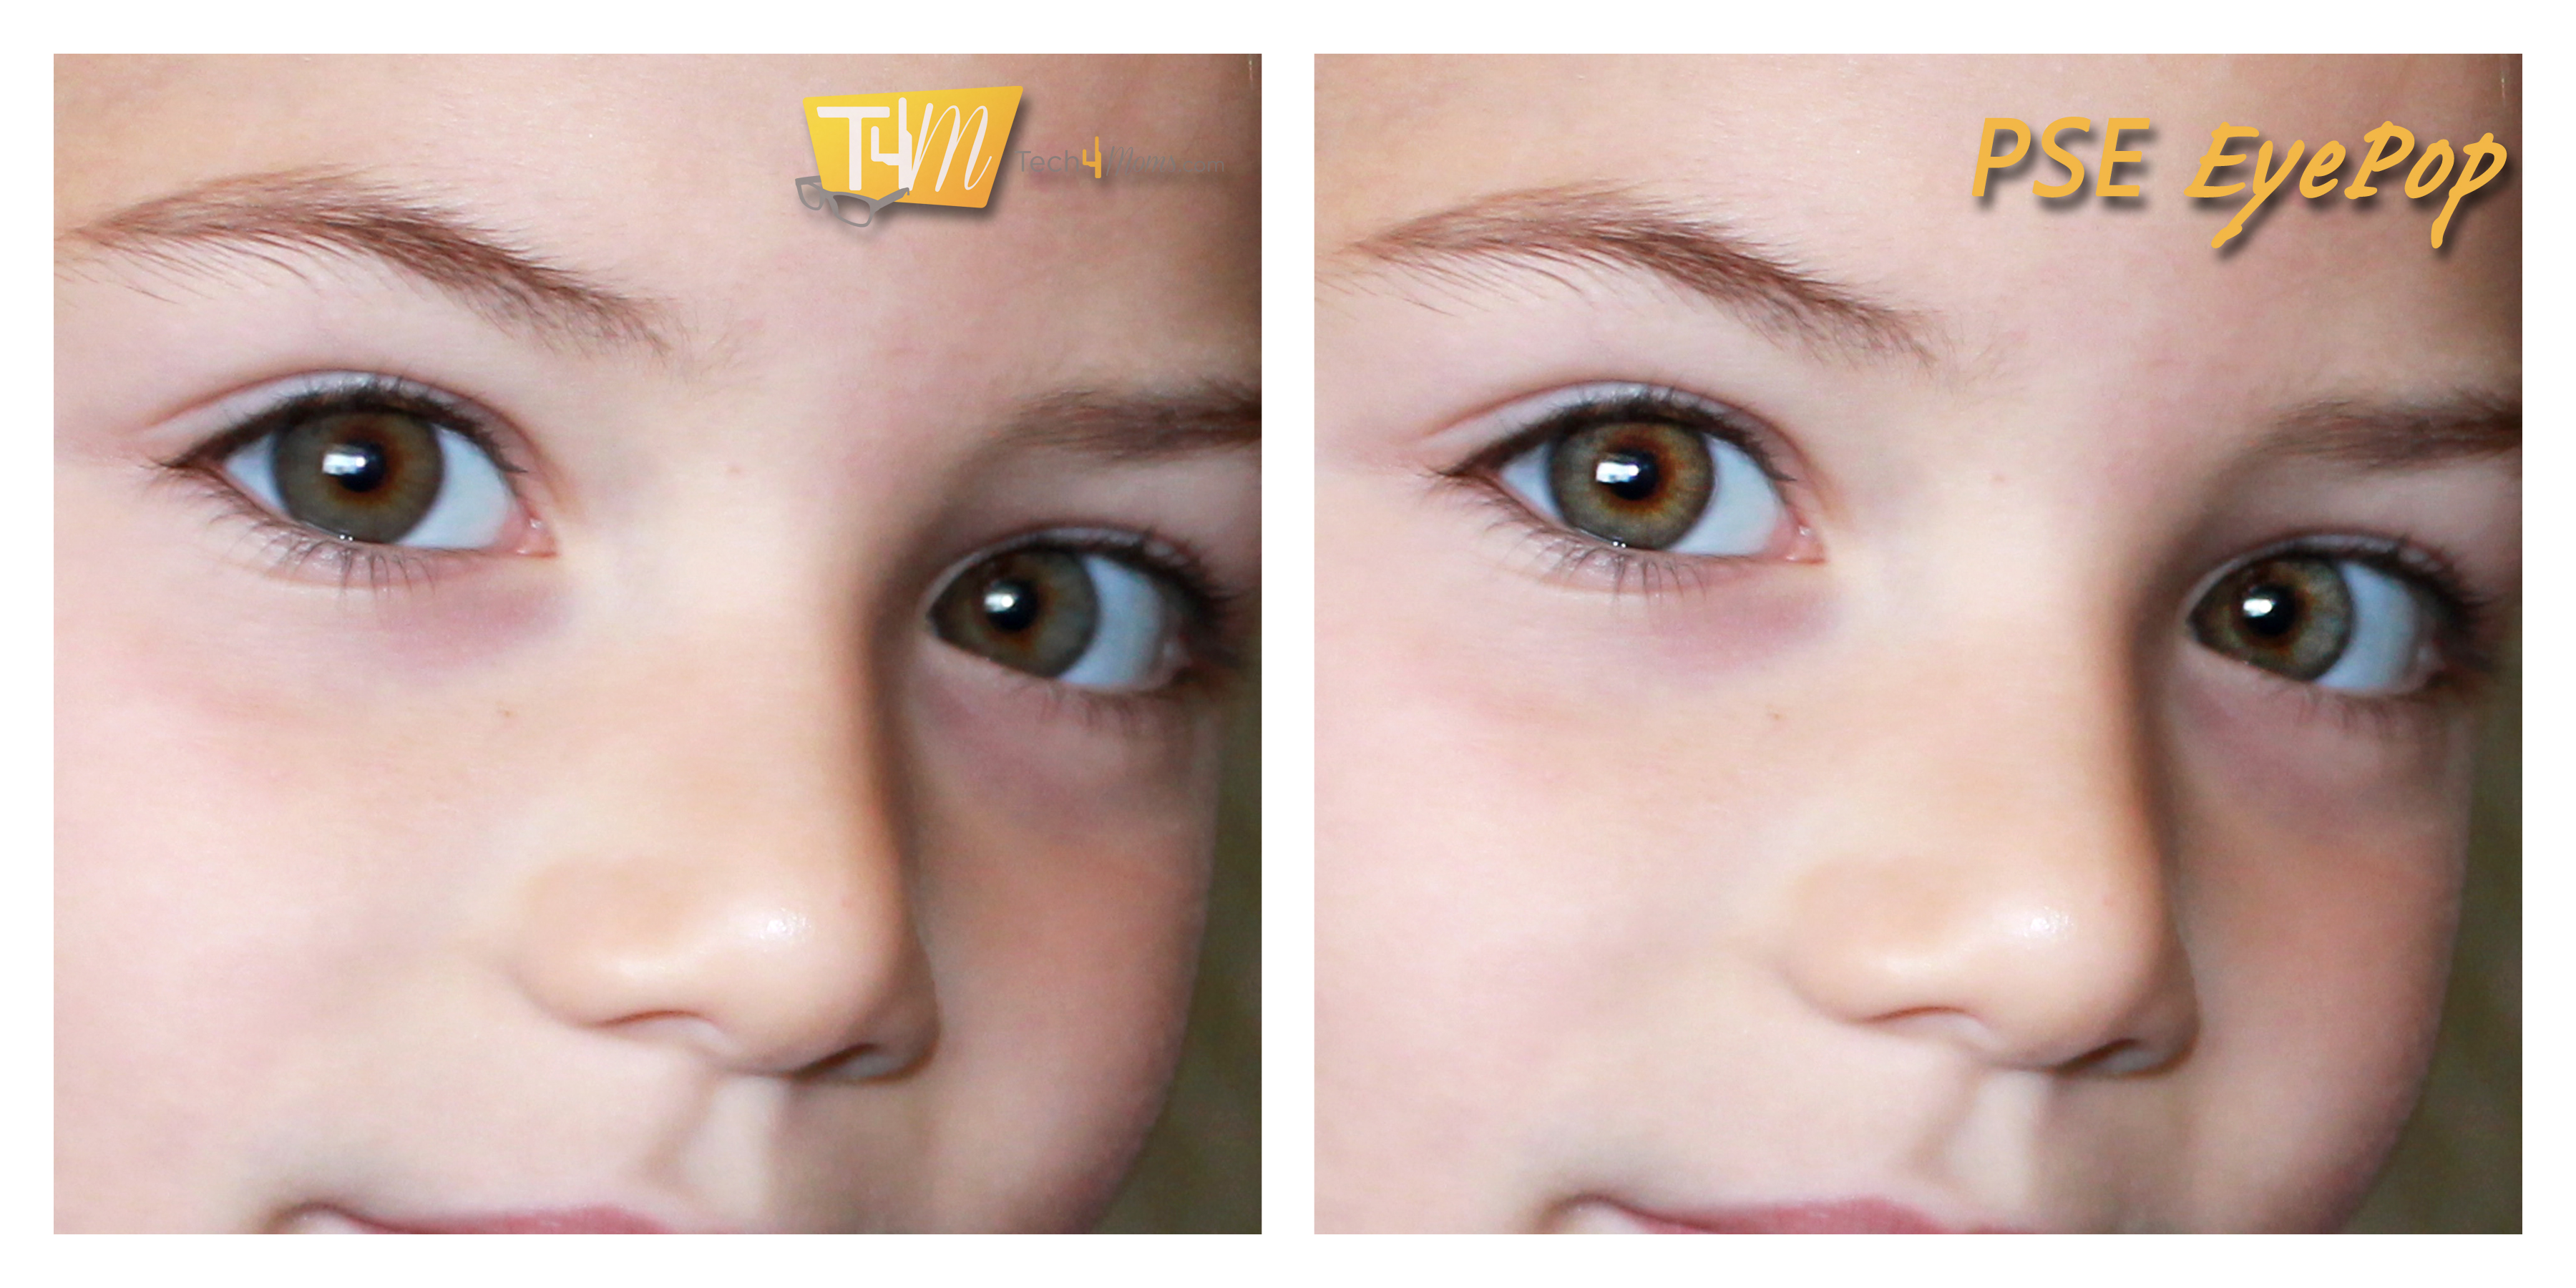 Before and After Eye Pop